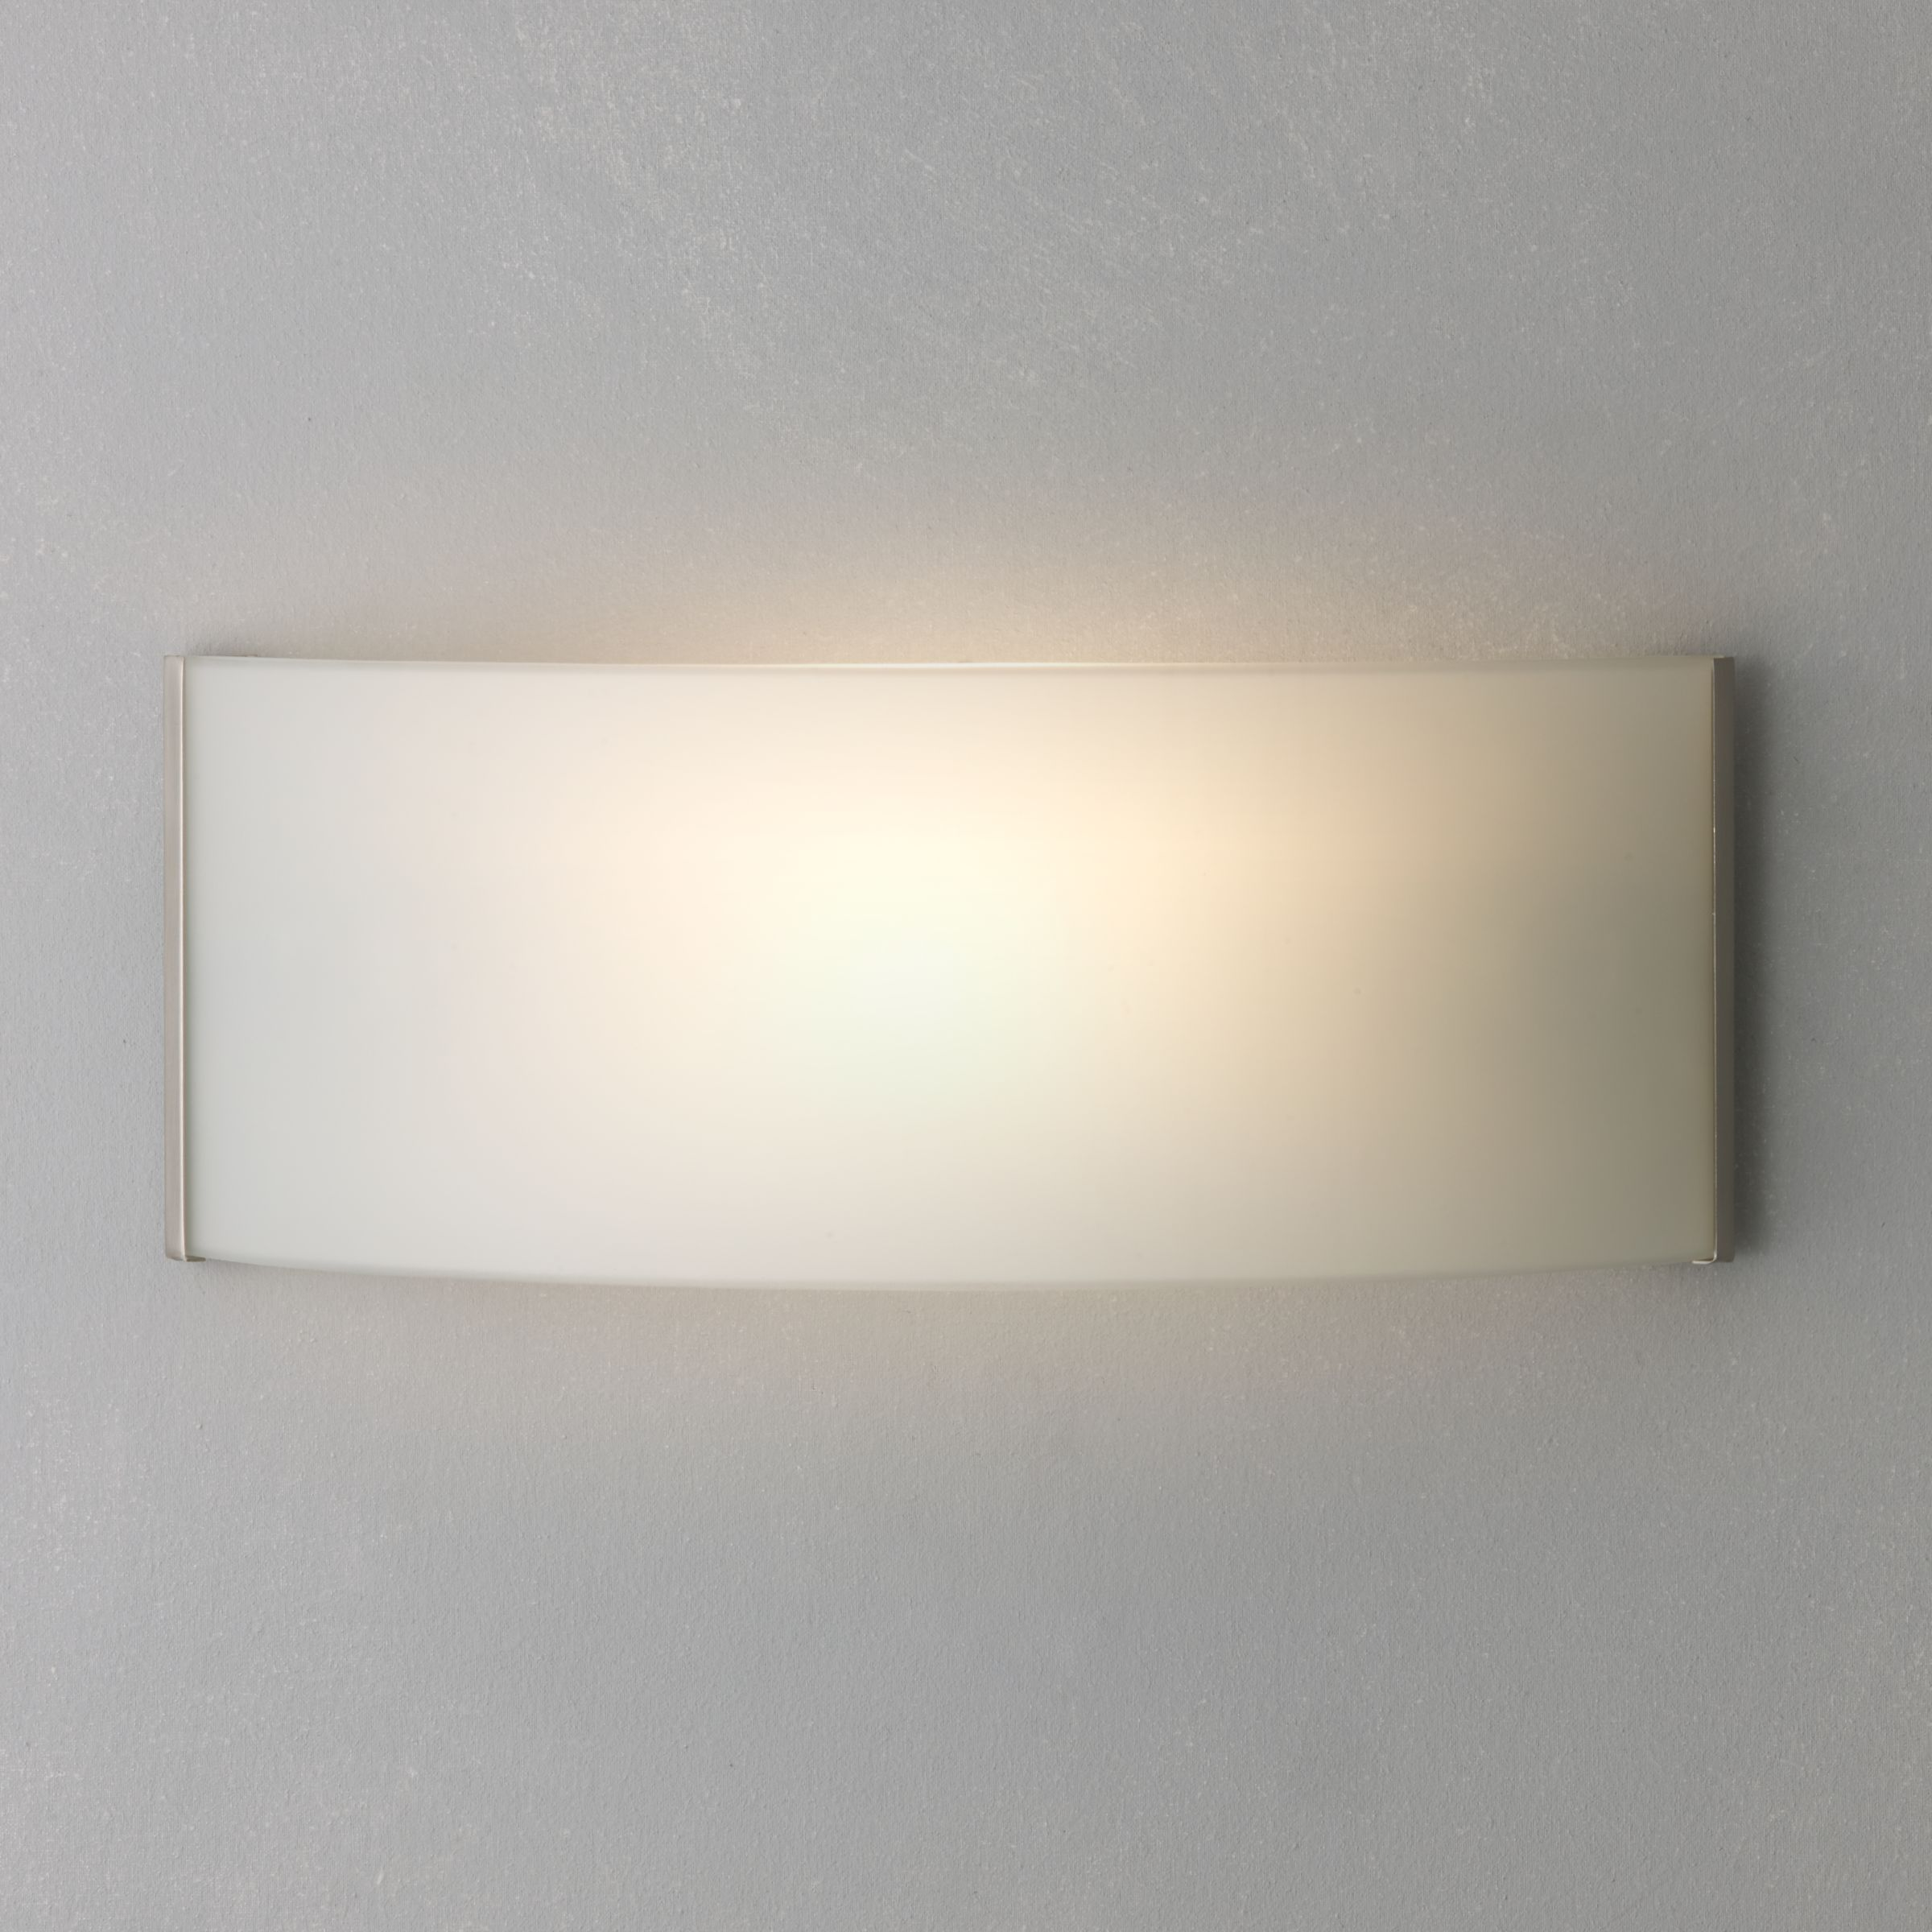 Buy John Lewis Rollo Wall Light John Lewis